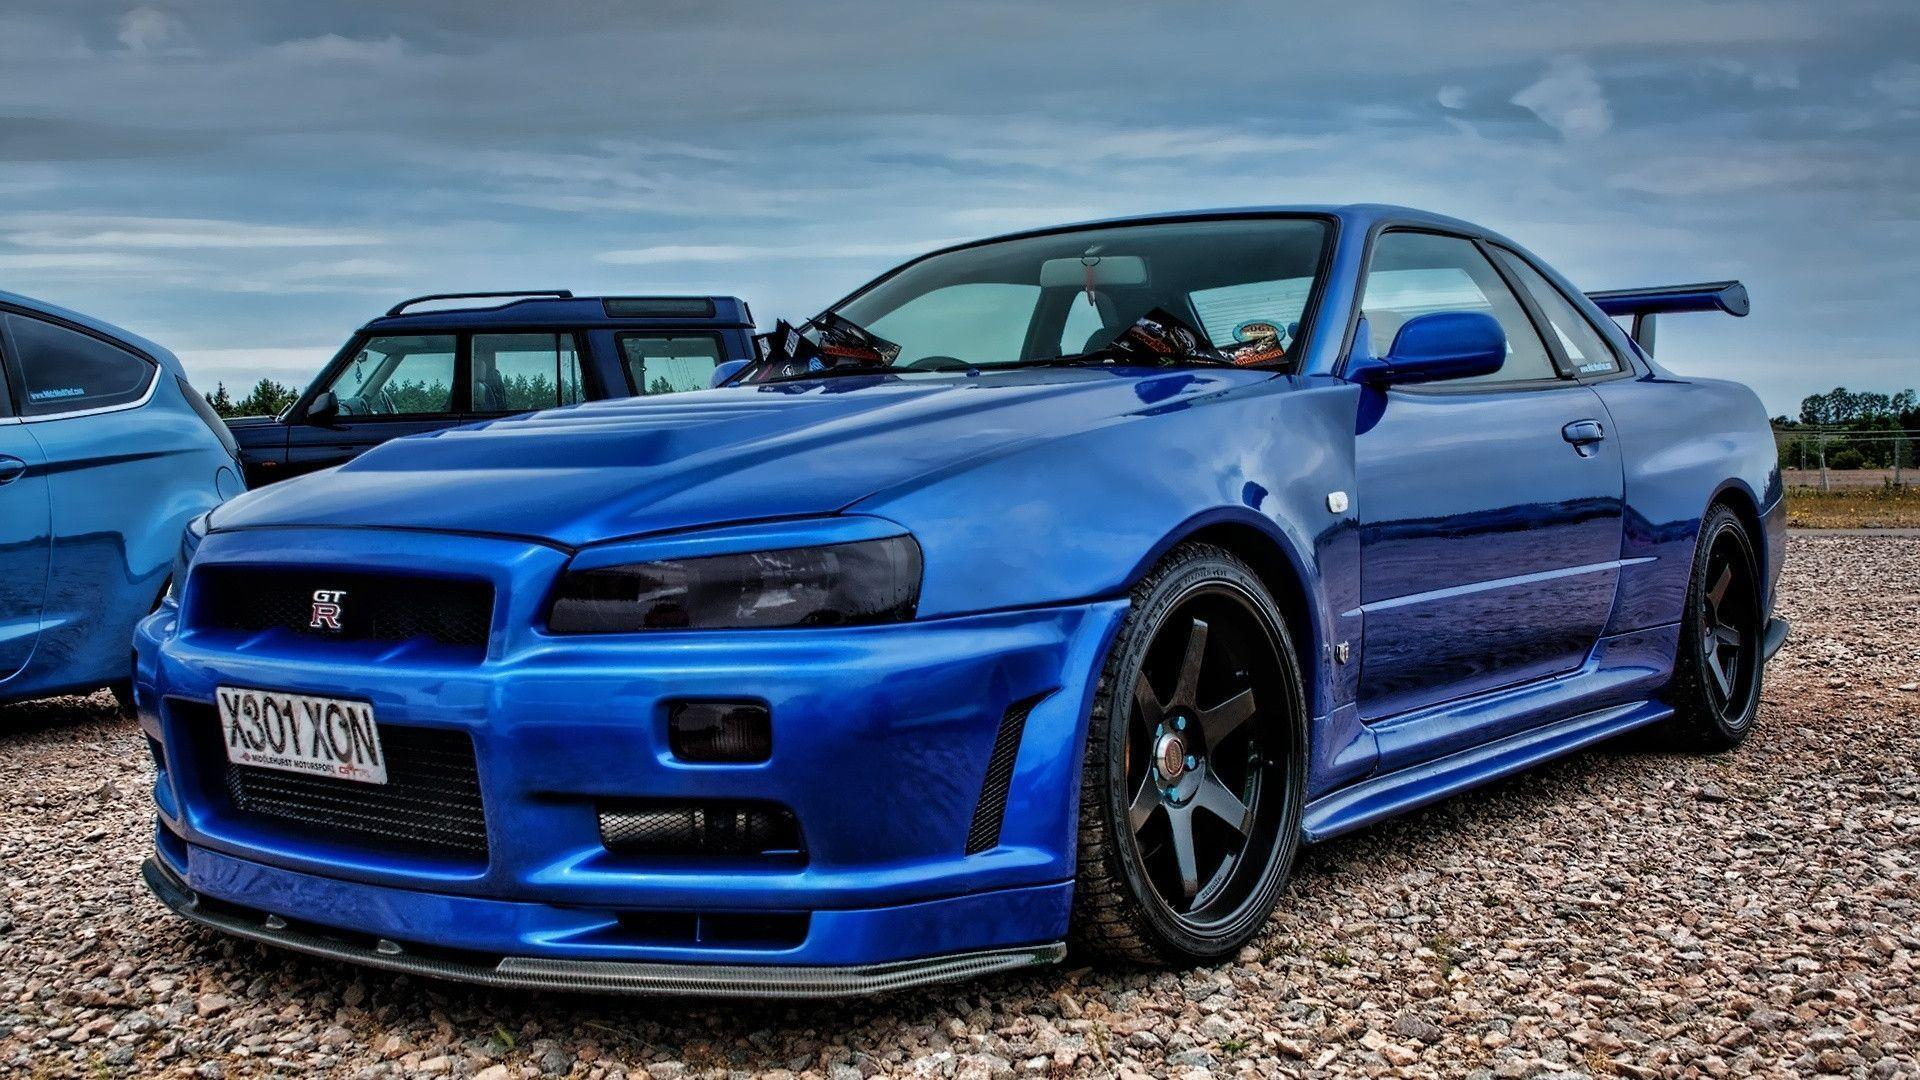 Honda S2000 Fiyat >> R34 GTR Wallpapers - Wallpaper Cave